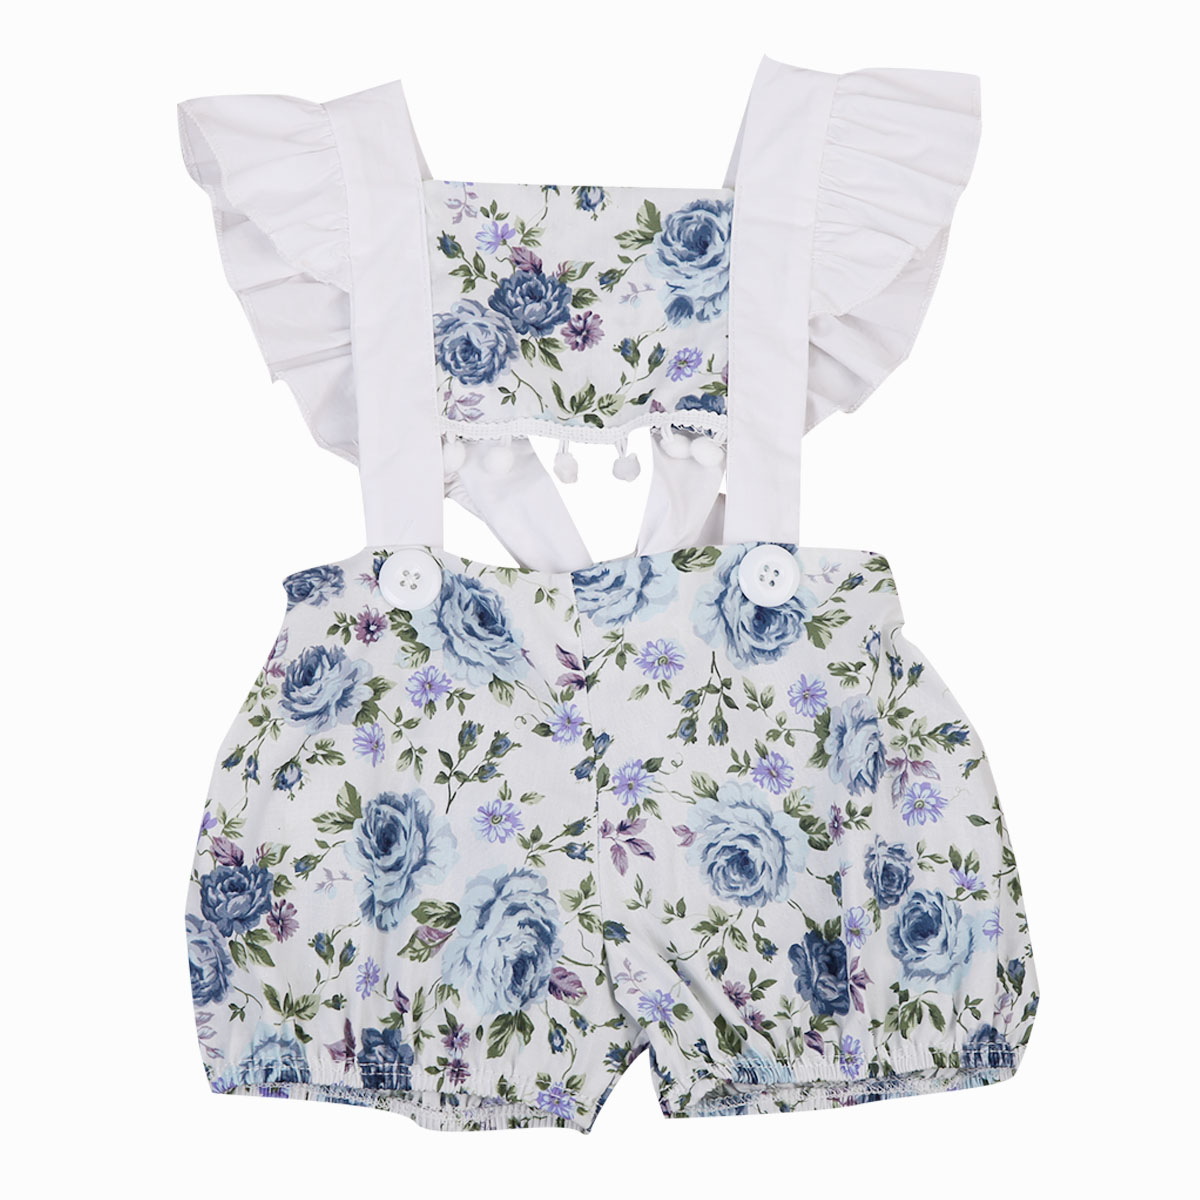 2018 Summer new Cute kid Floral print Newborn Baby Girls short ruffles sleeve lace up backless Romper Sunsuit Outfits 0-24M